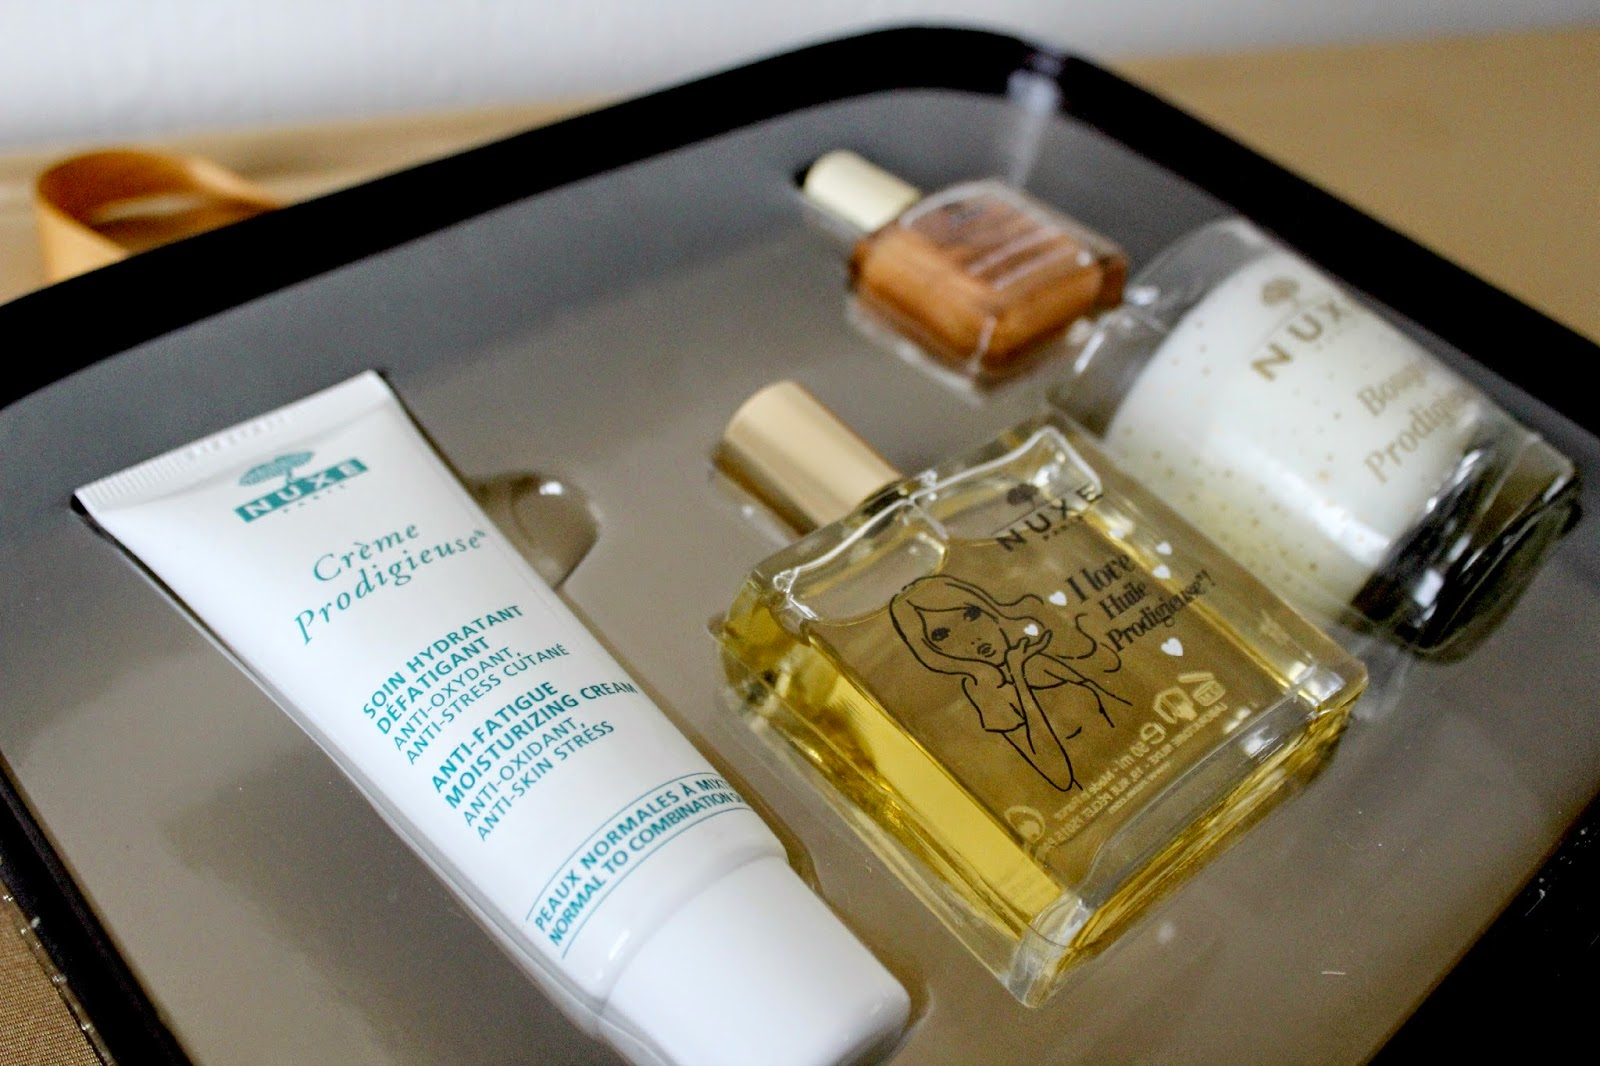 Lookfantastic-nuxe-gift-set